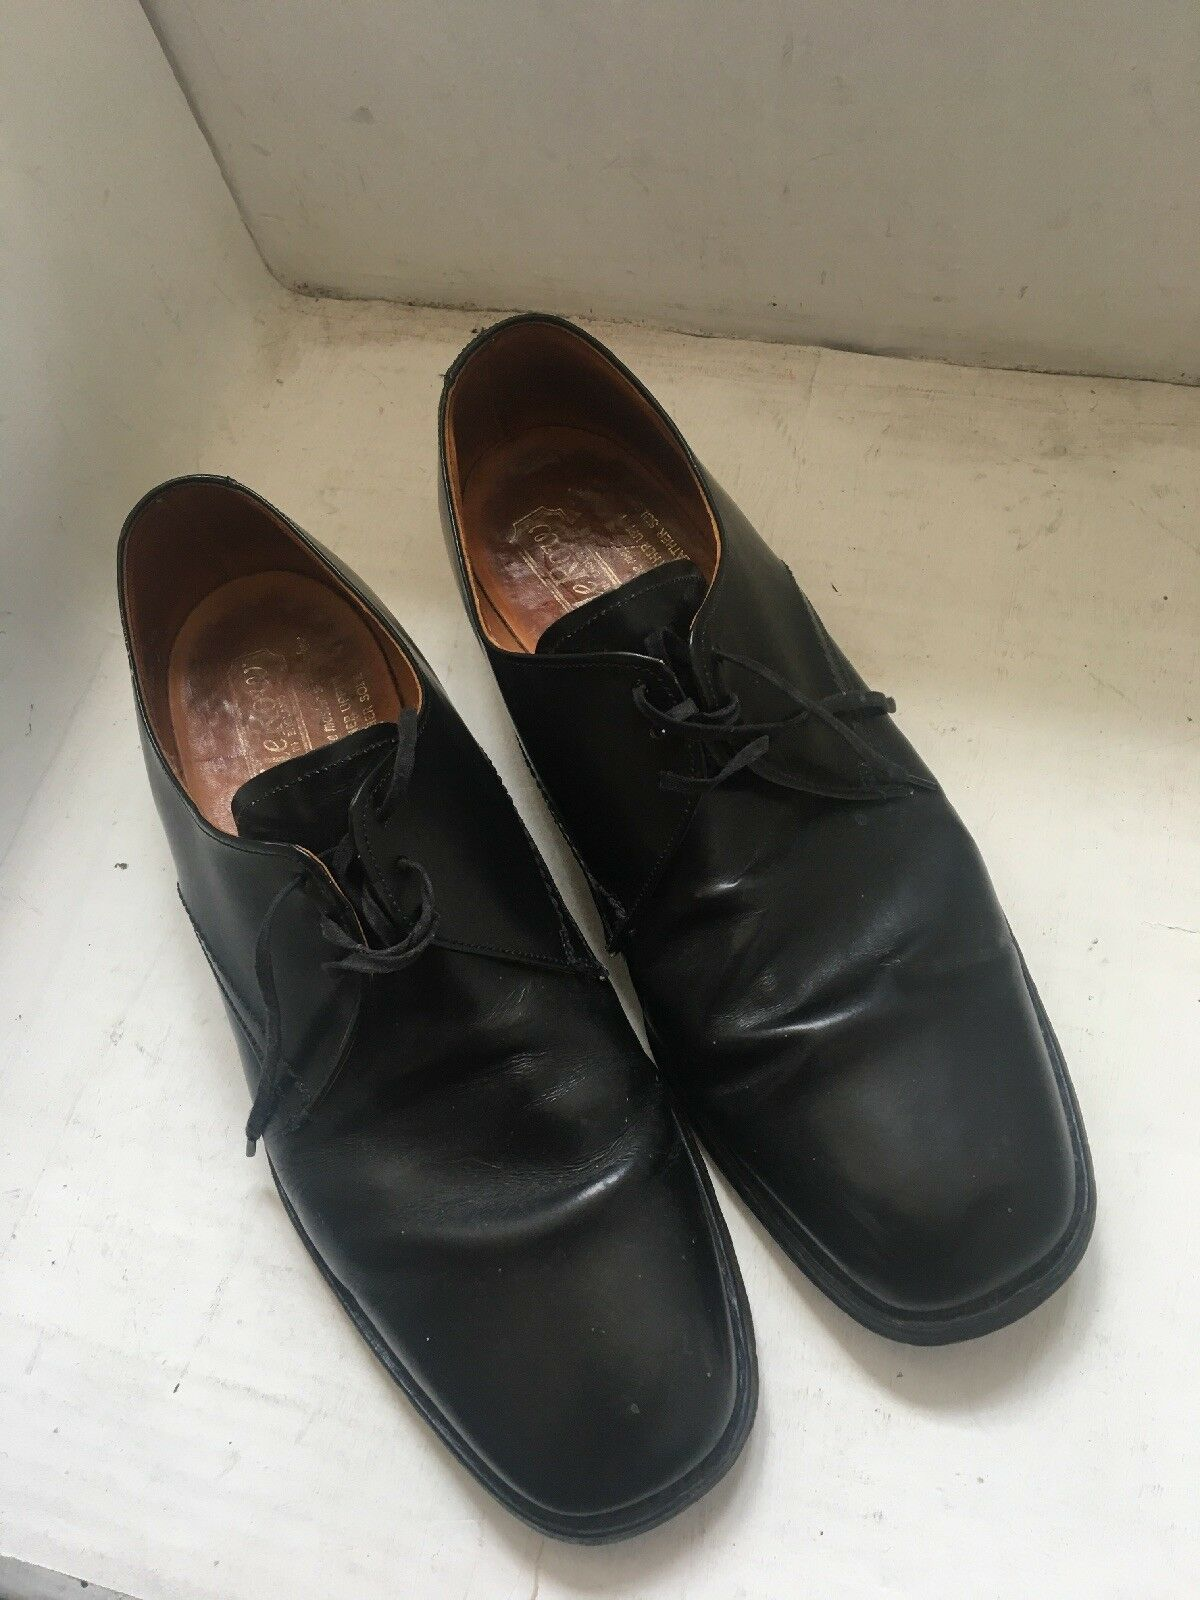 Saville Row Leather Upper And Soles Mens shoes Black Size UK 9.5